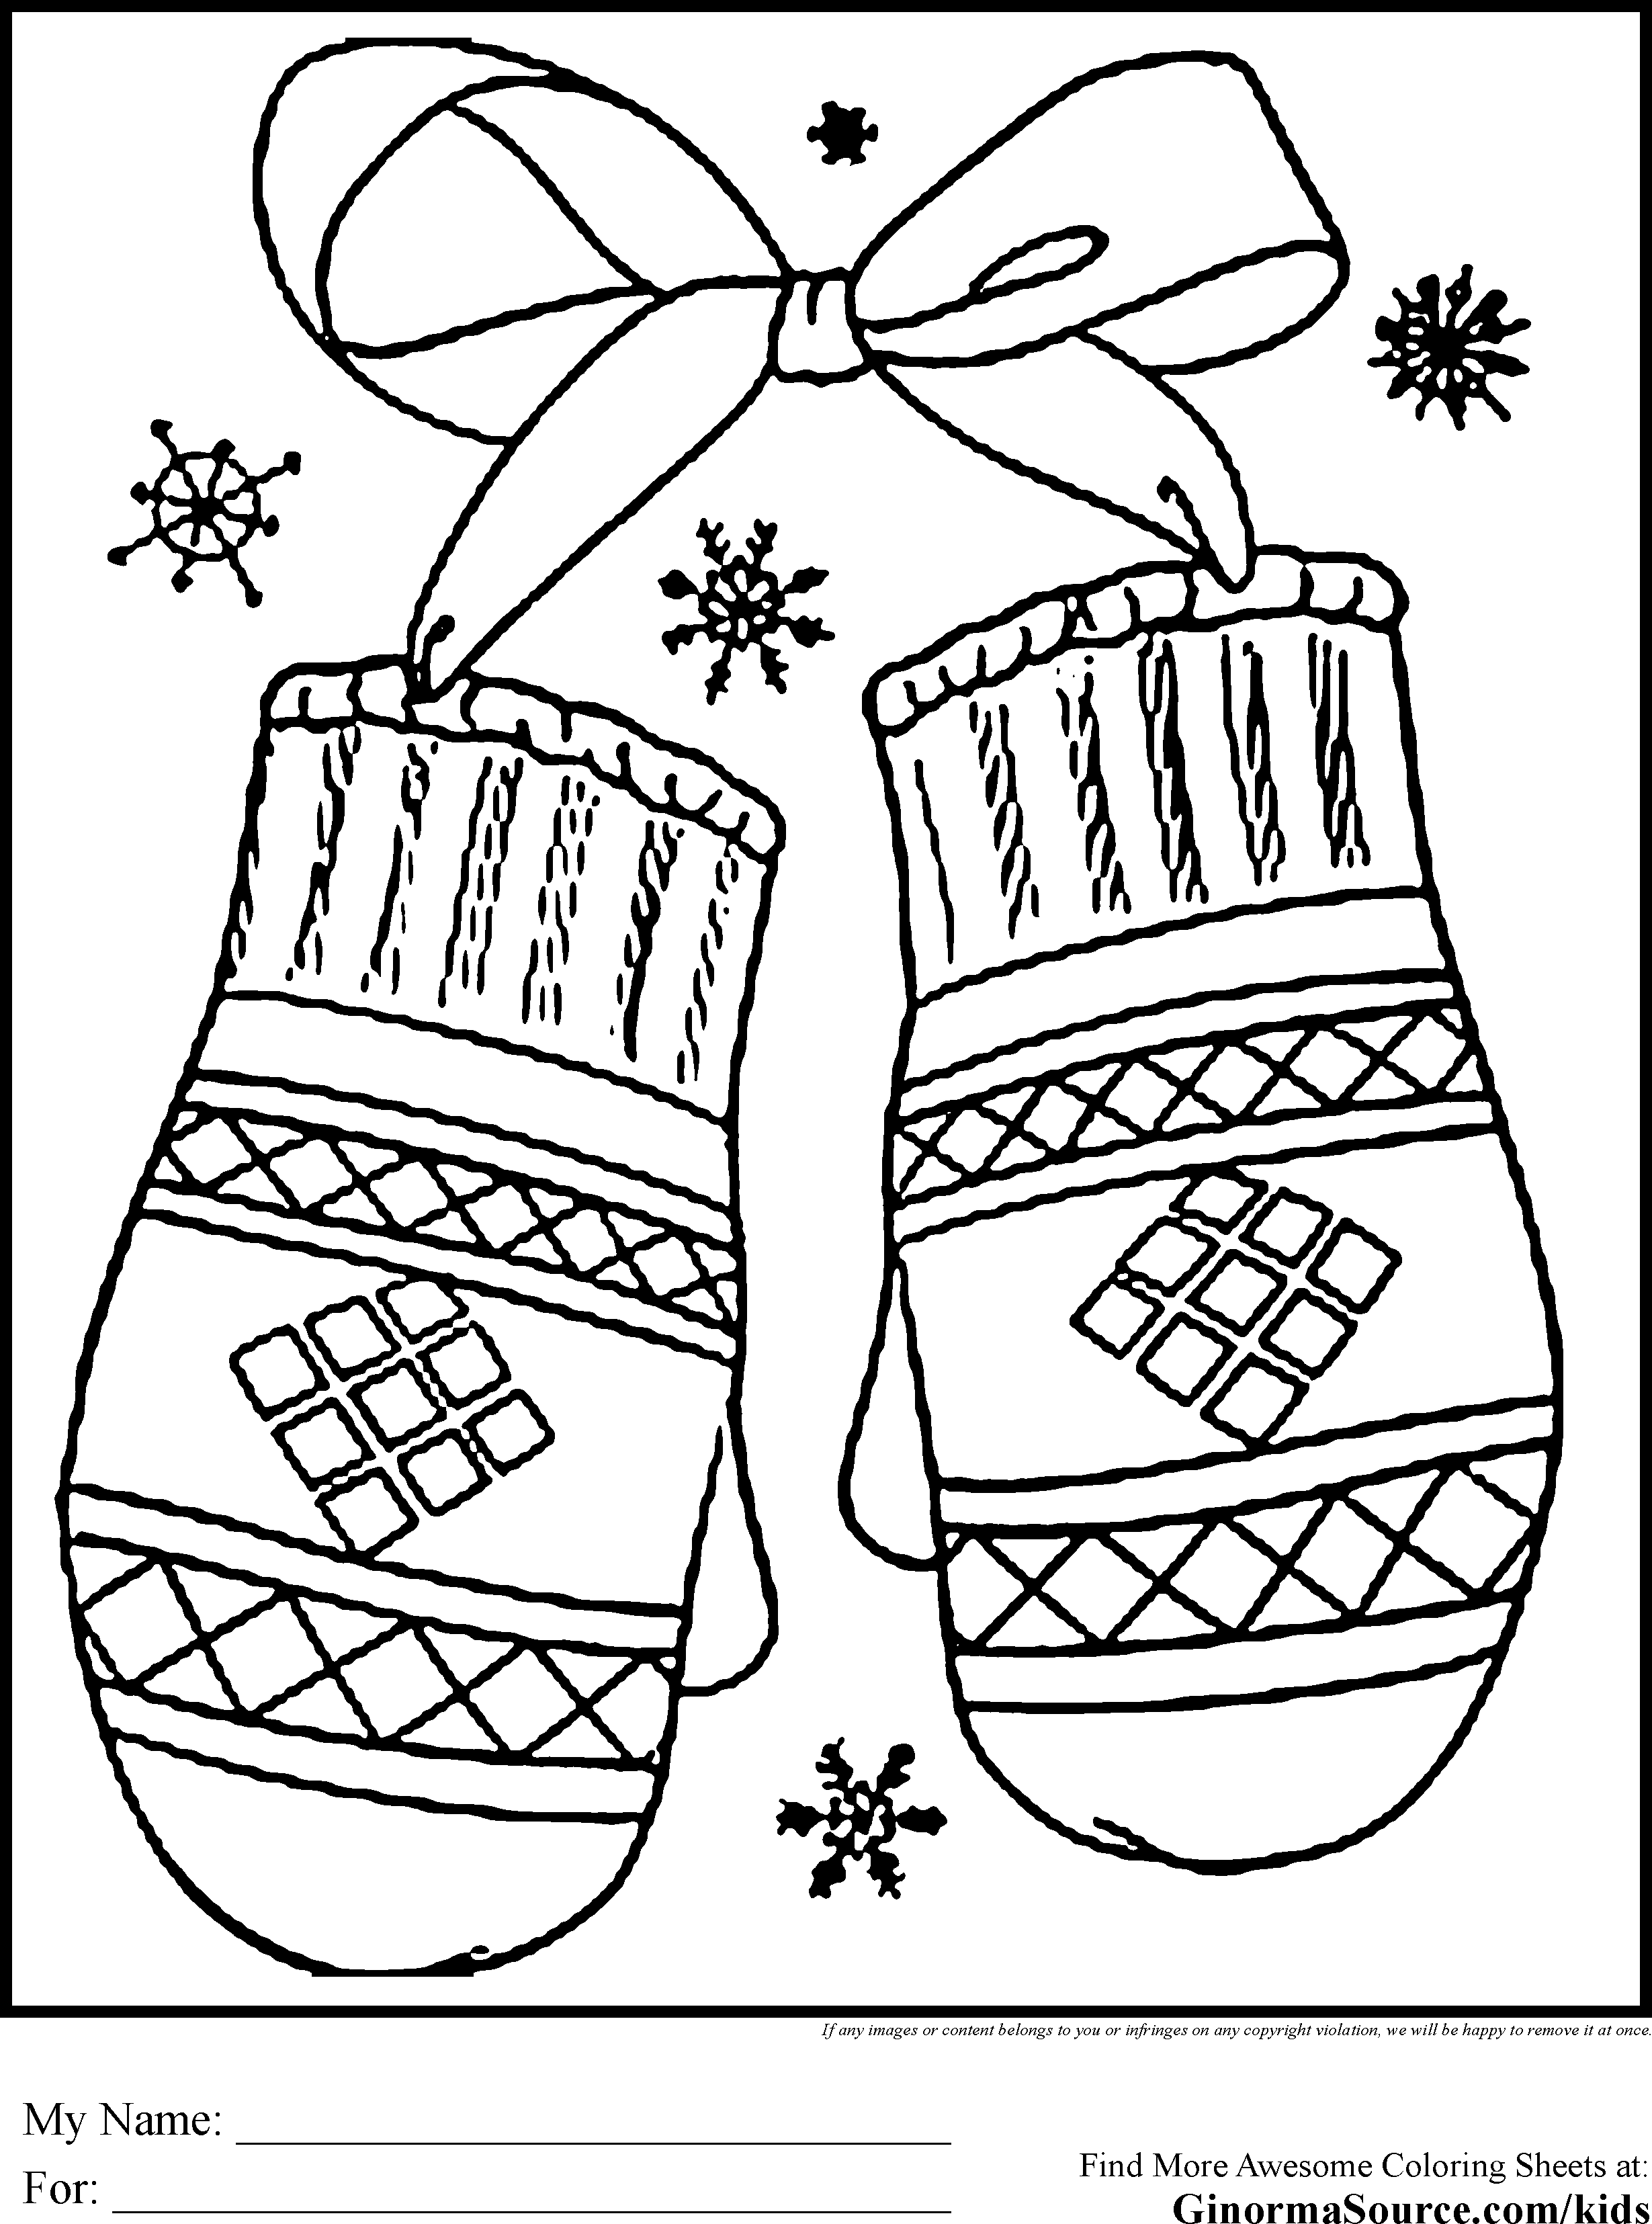 Colouring Pages Holidays : Free Coloring Pages For December Holidays Coloring Home